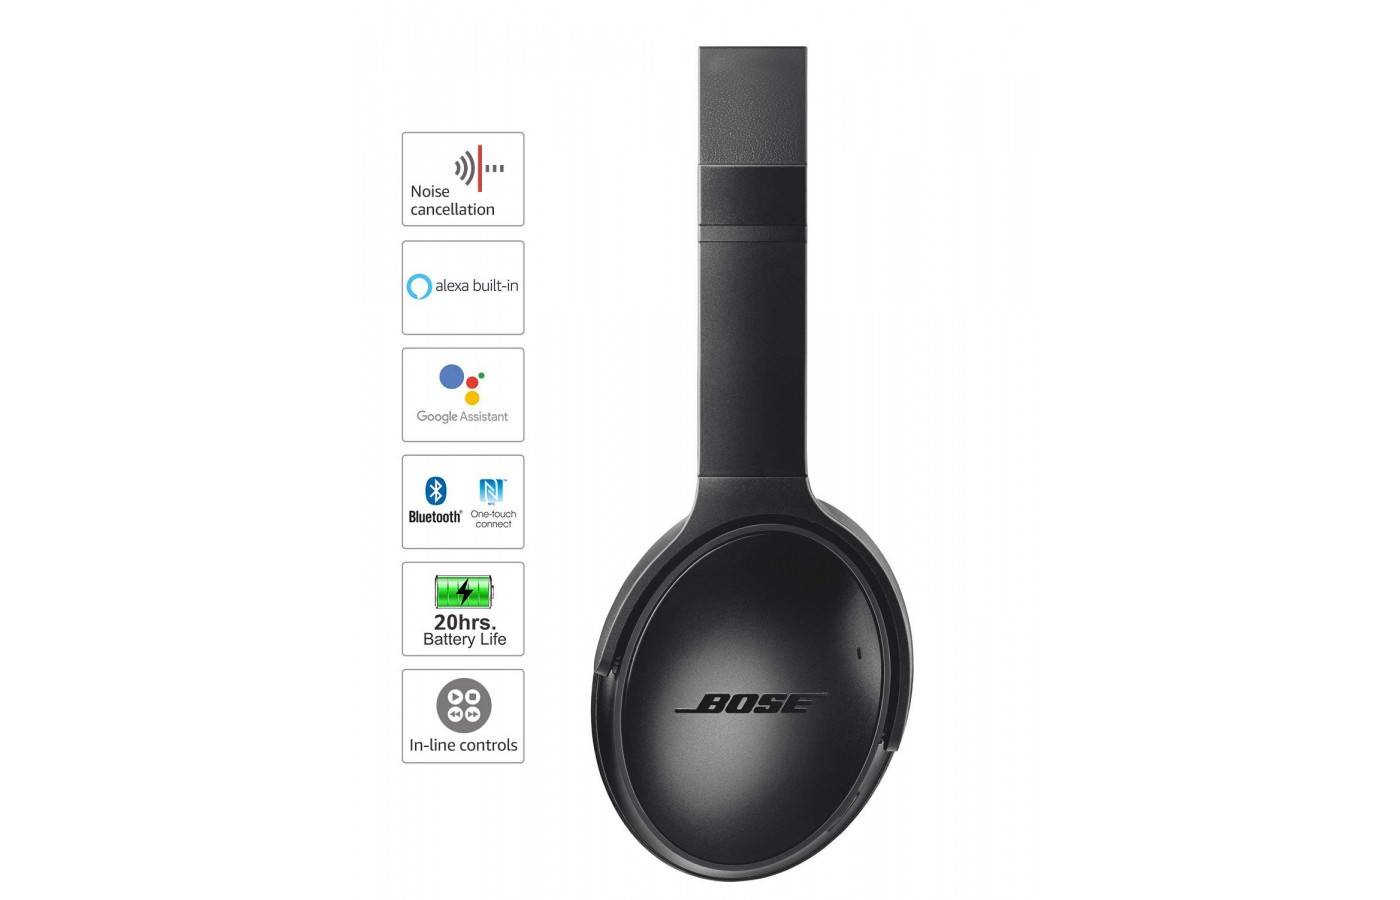 Bose QuietComfort 35 II features